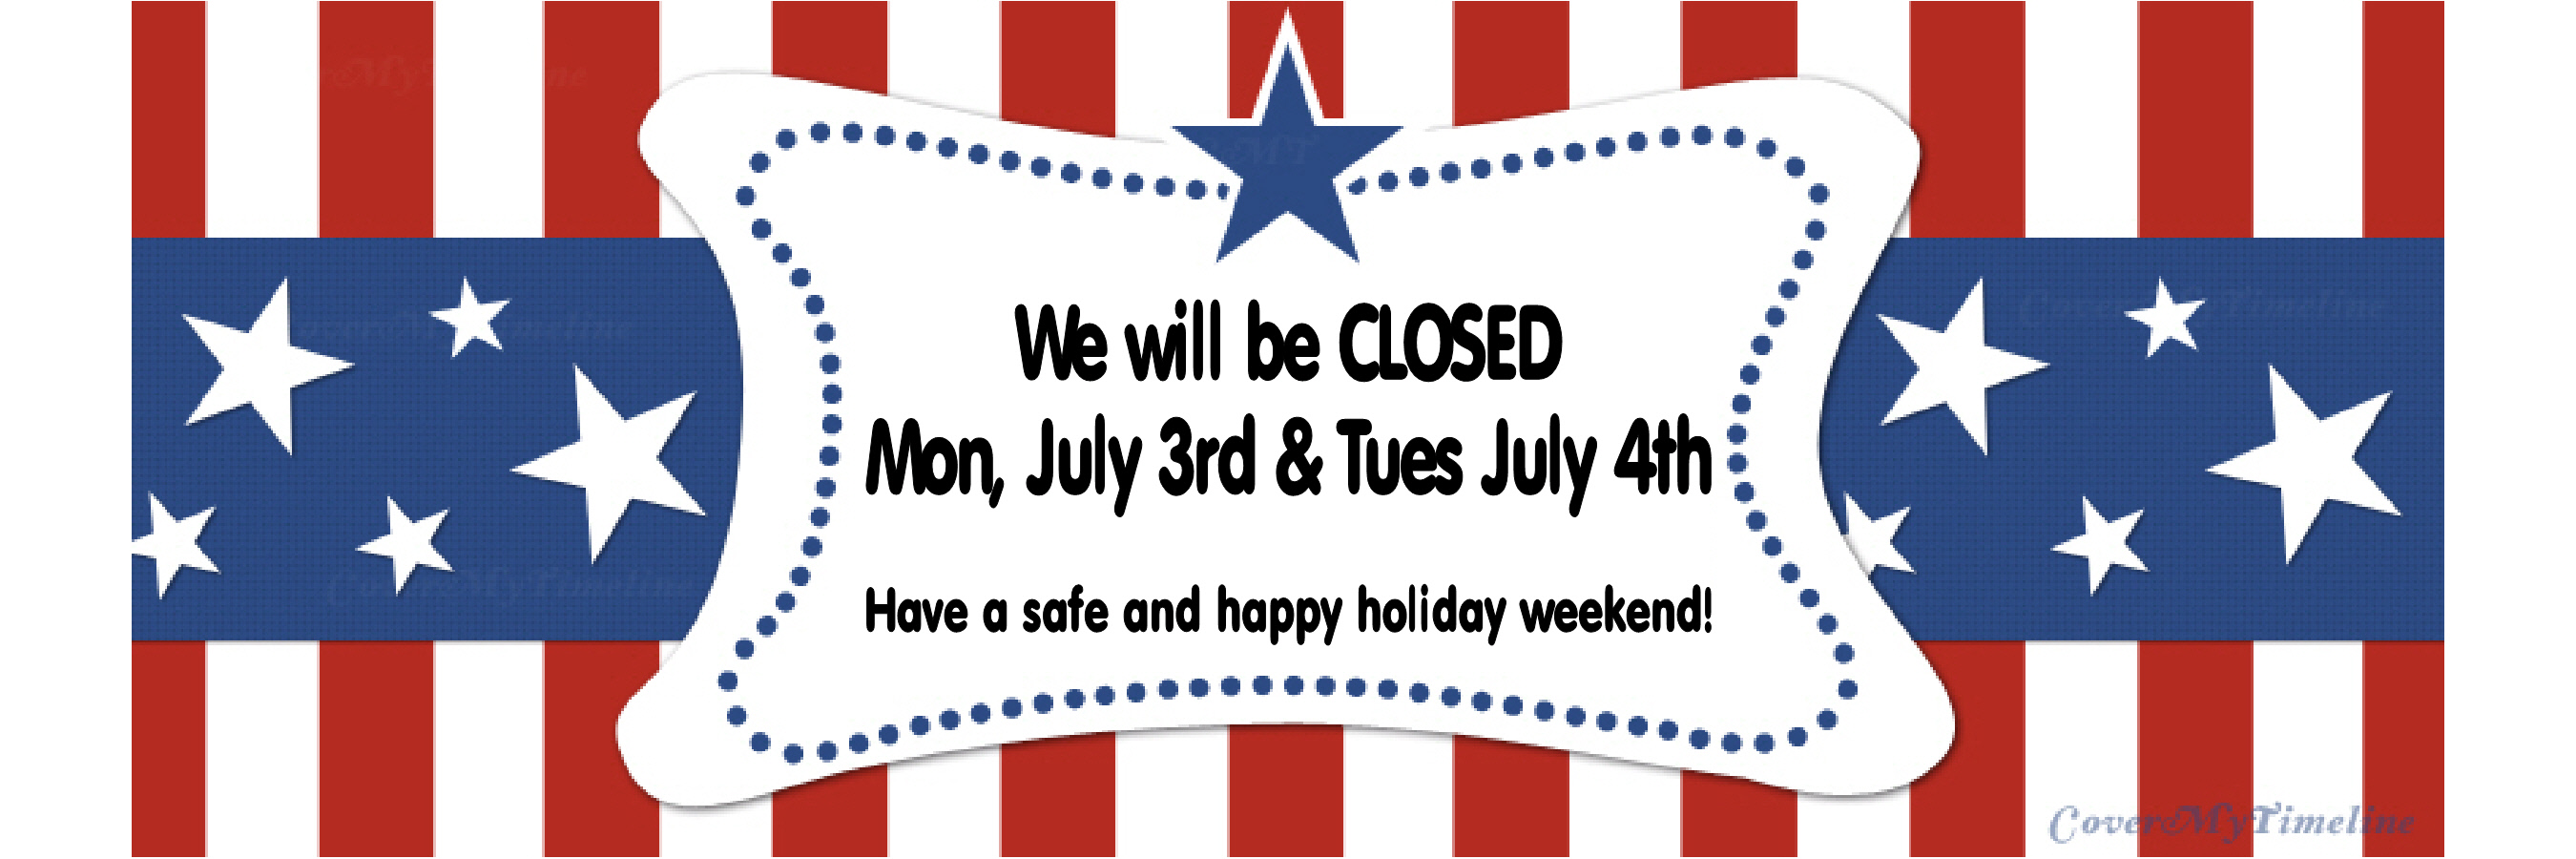 web banner july 4th hours